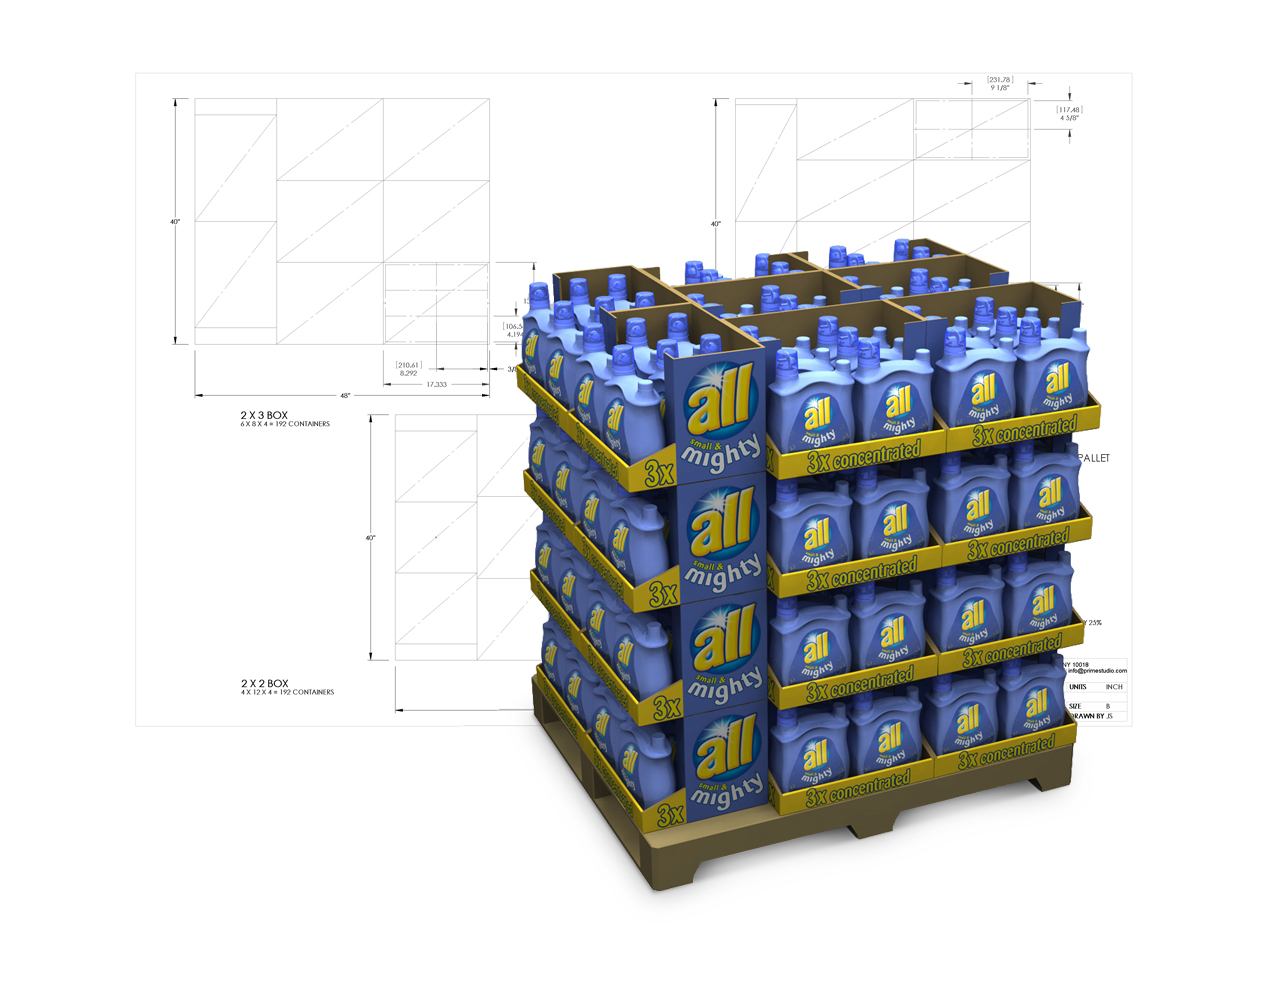 Laundry bottle pallet design